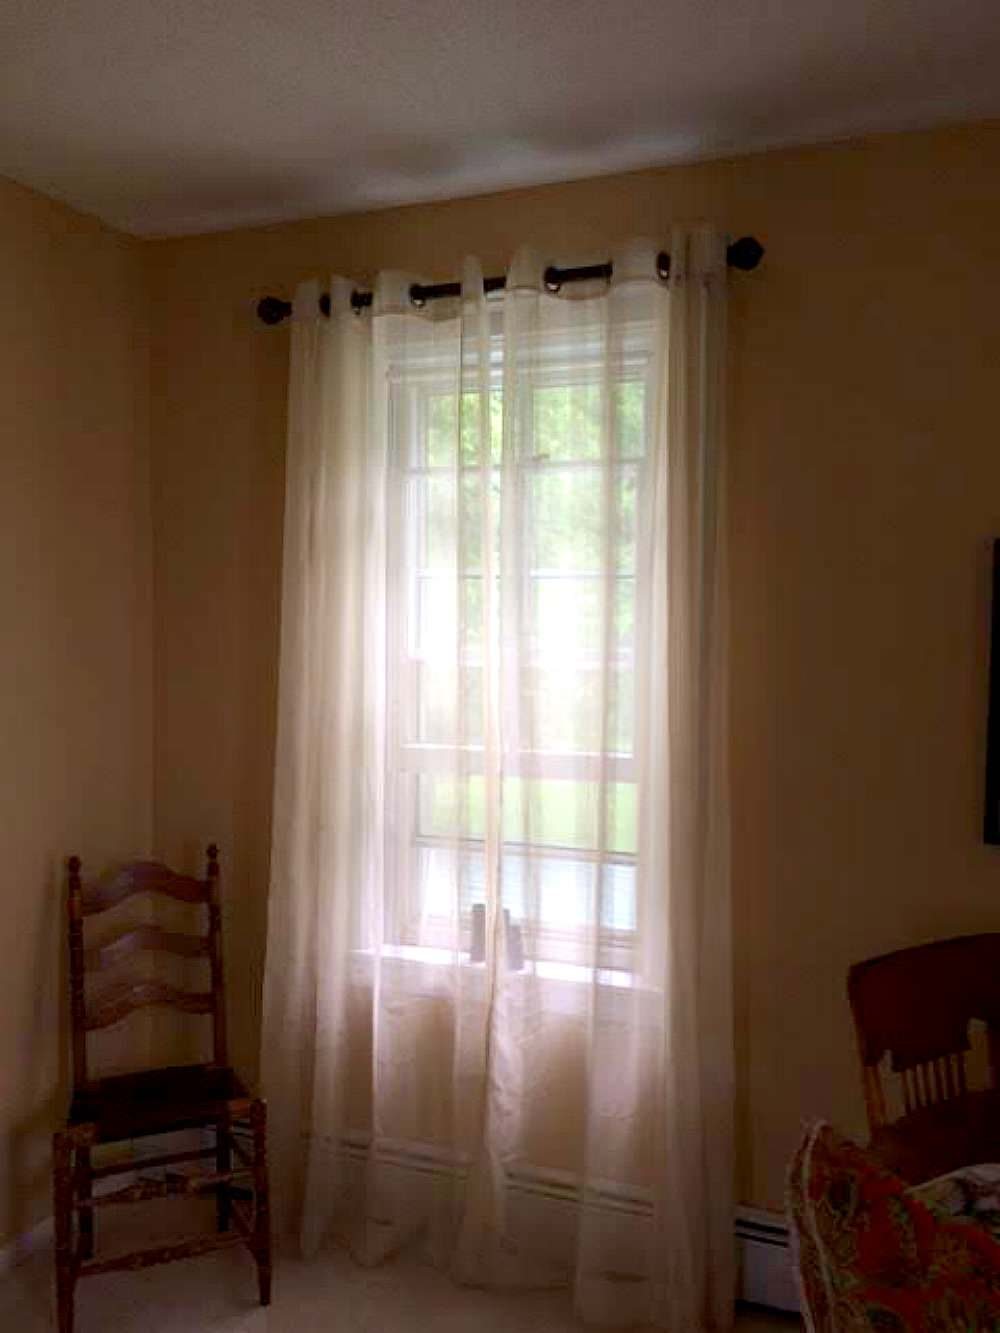 Small Bedroom Window Treatments Ideas And Photos Houzz,Two Story 2 Story 5 Bedroom House Floor Plans